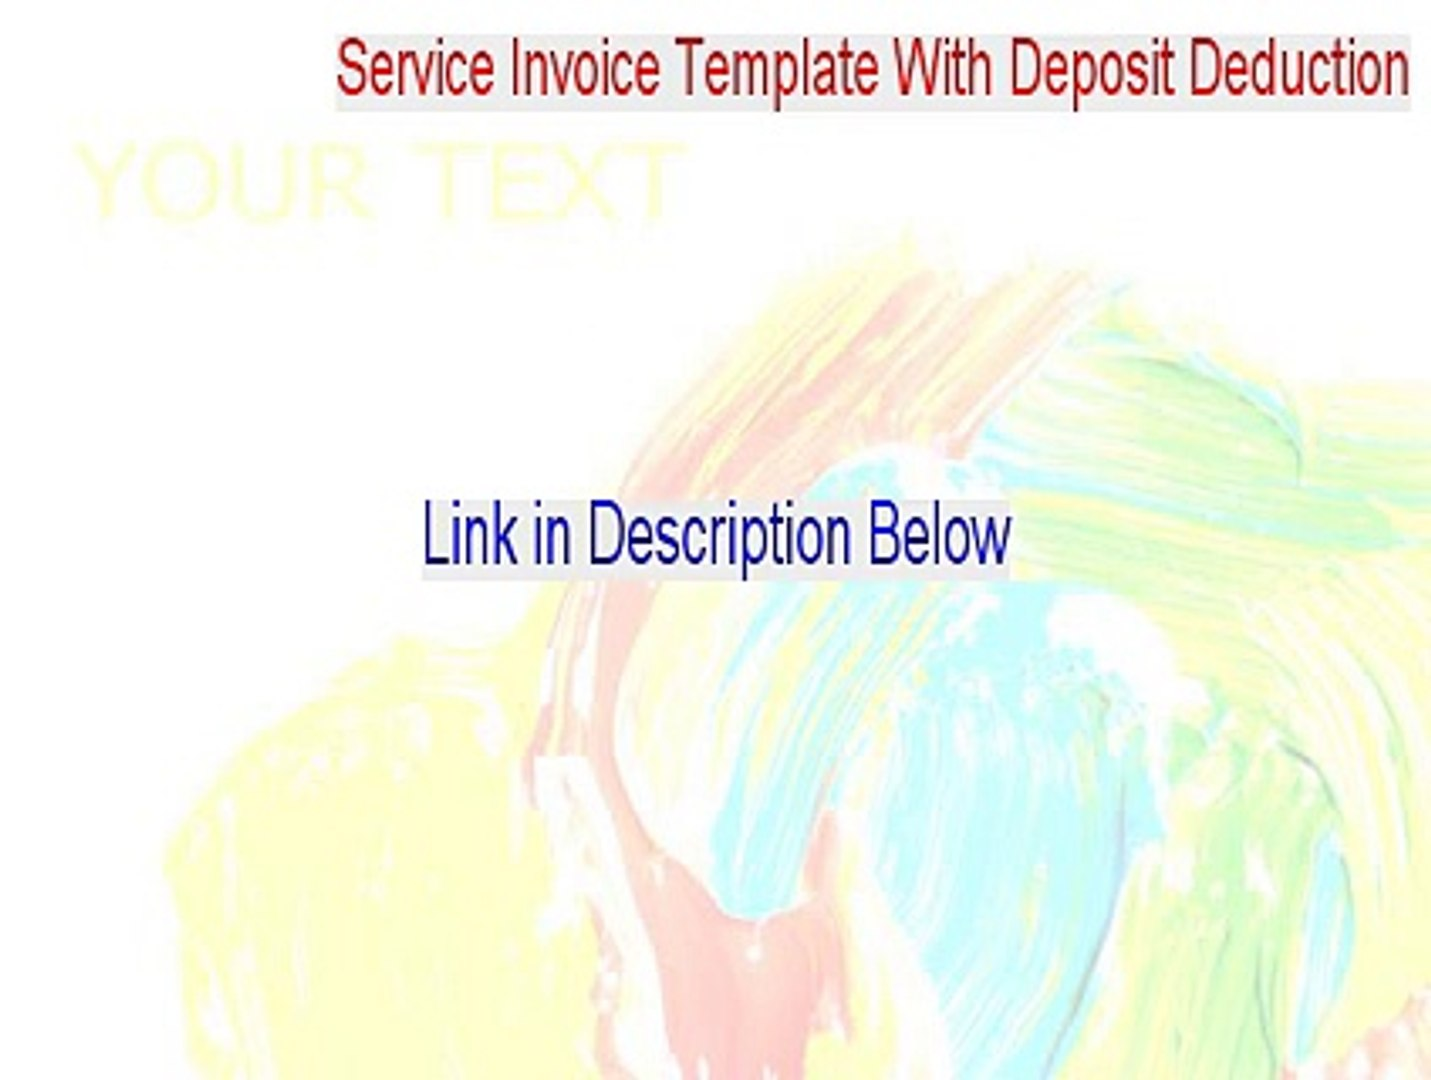 Service Invoice Template With Deposit Deduction Full - Download Here [2015]